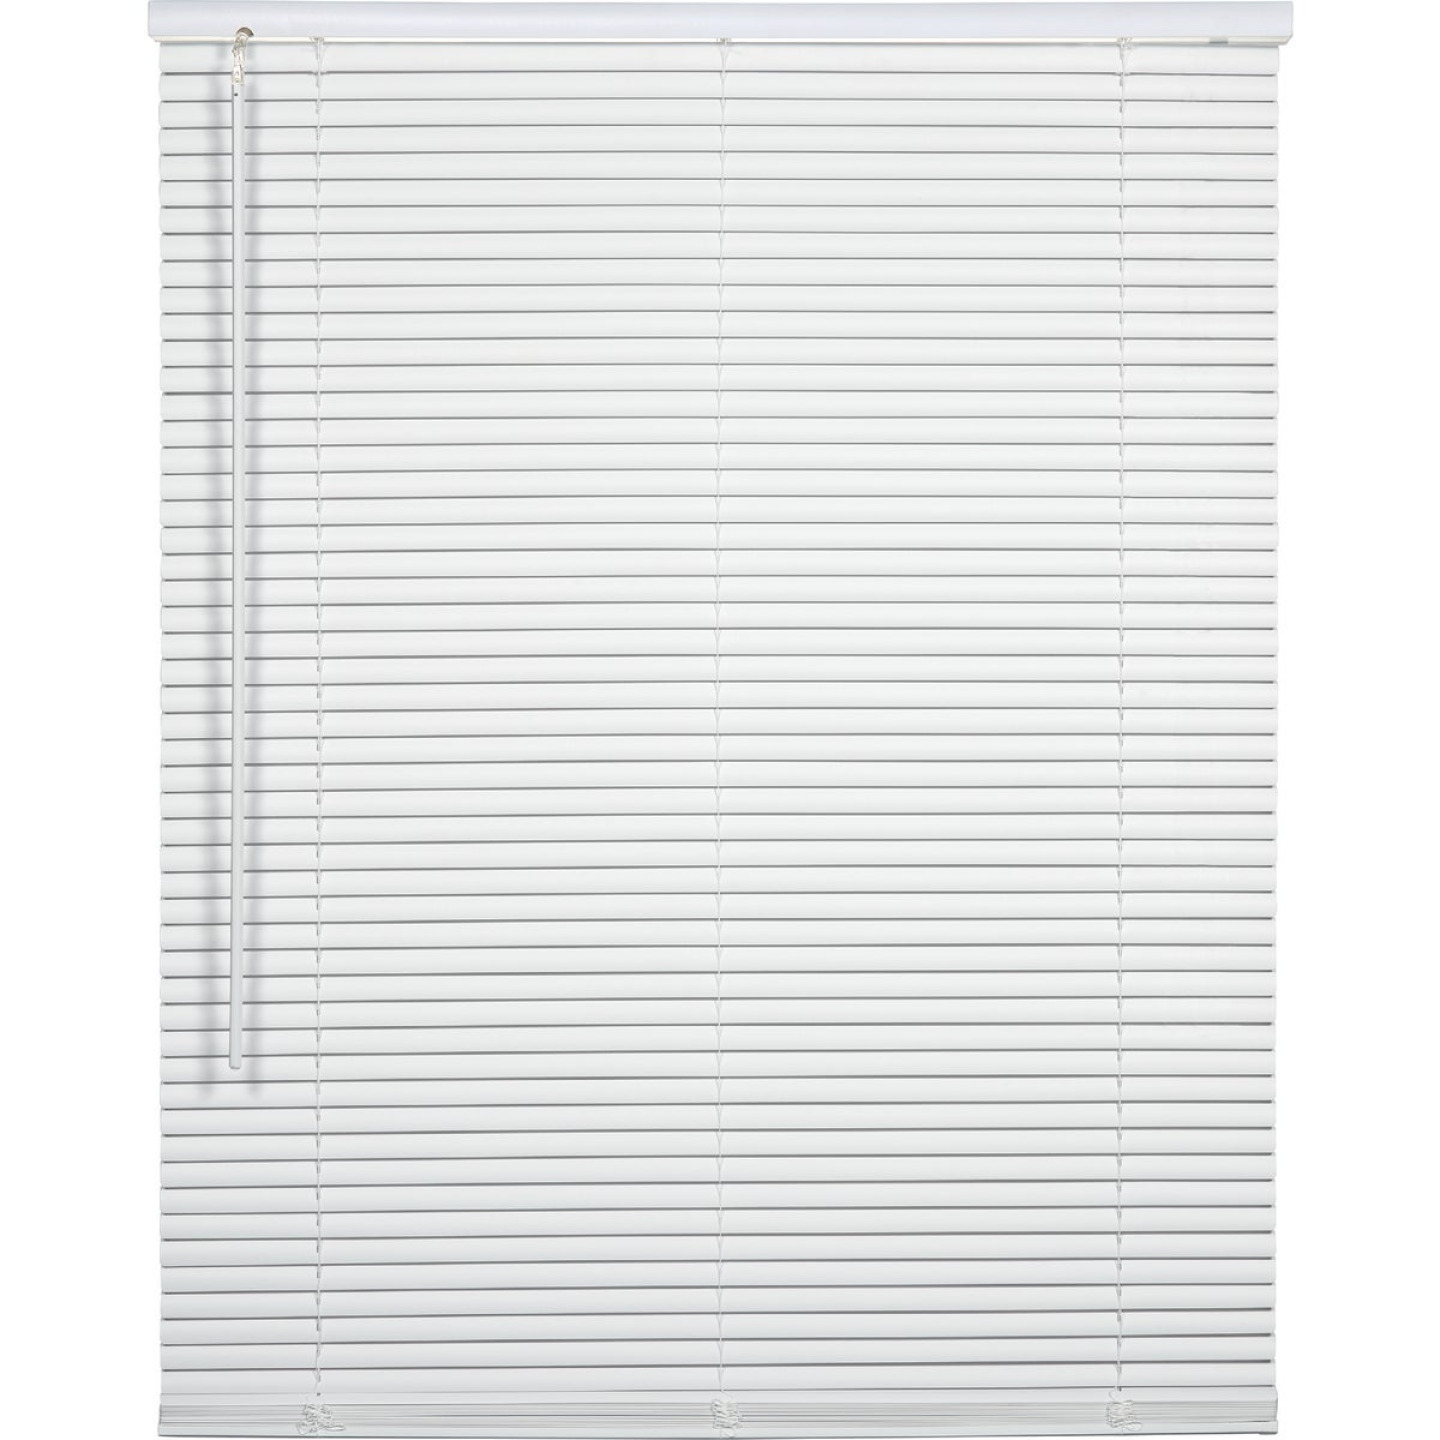 Home Impressions 32 In. x 64 In. x 1 In. White Vinyl Light Filtering Cordless Mini Blind Image 1